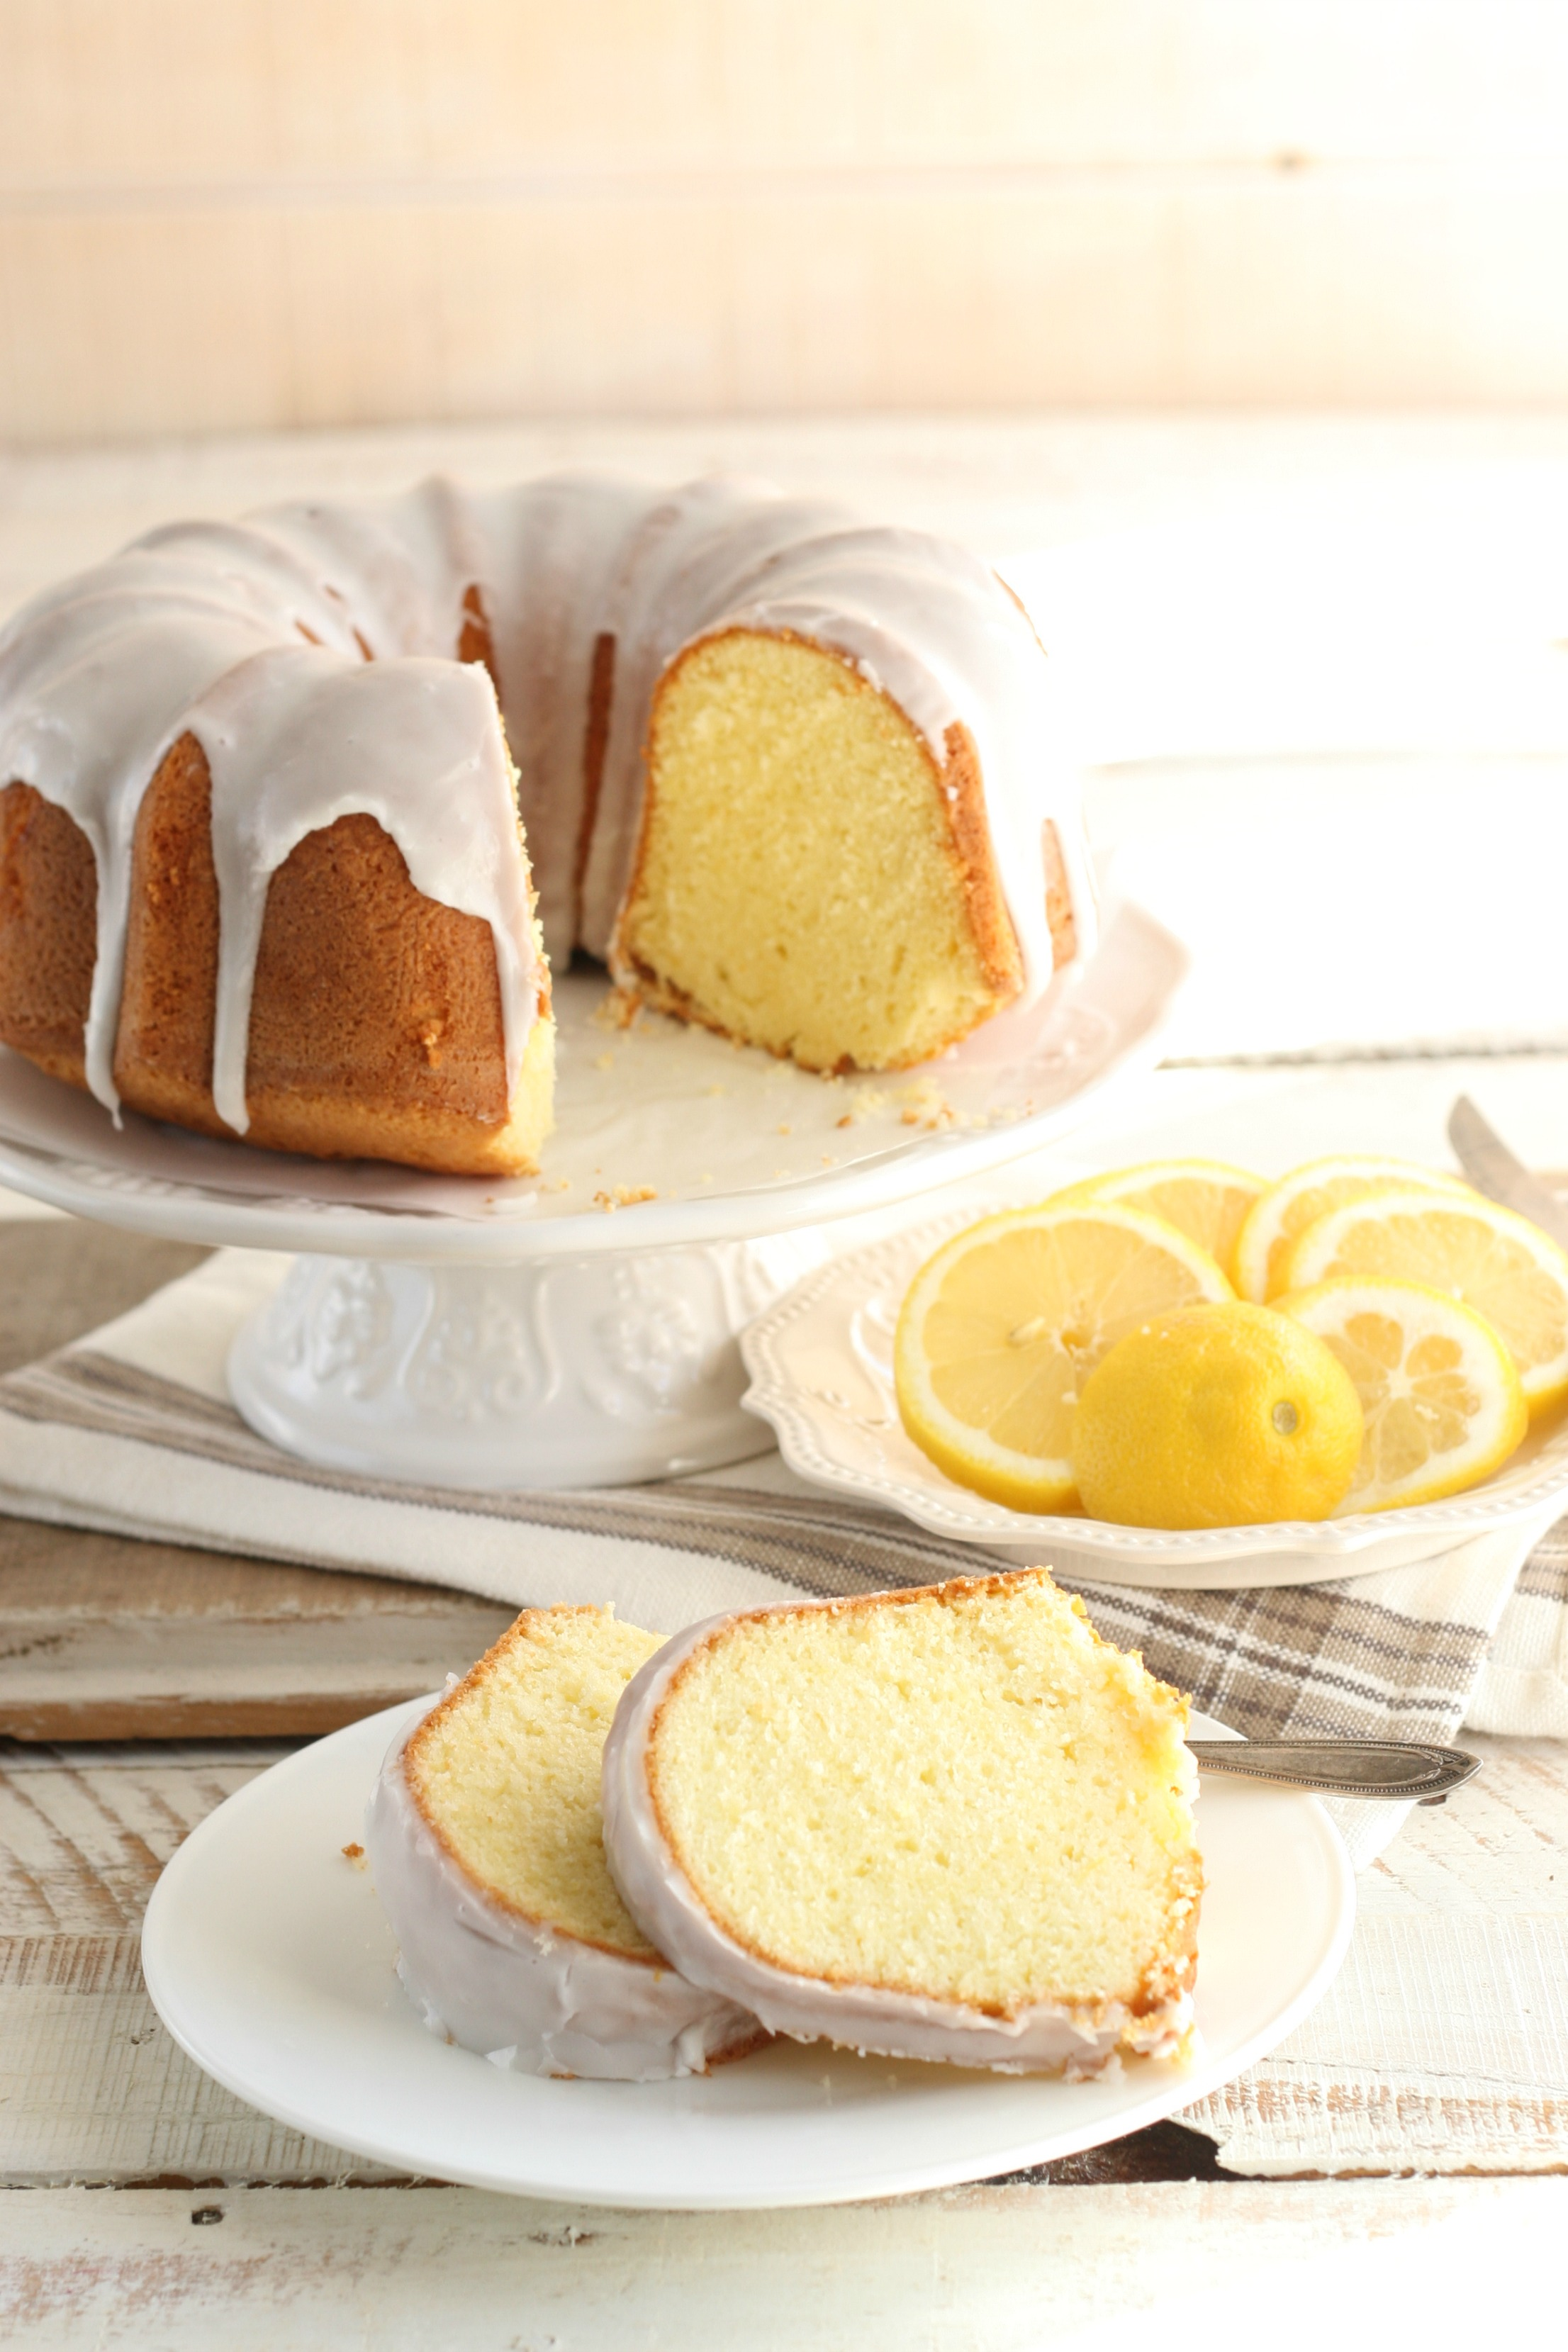 Homemade Lemon Pound Cake is so moist and flavorful. #lemon #lemoncake #poundcake #recipes